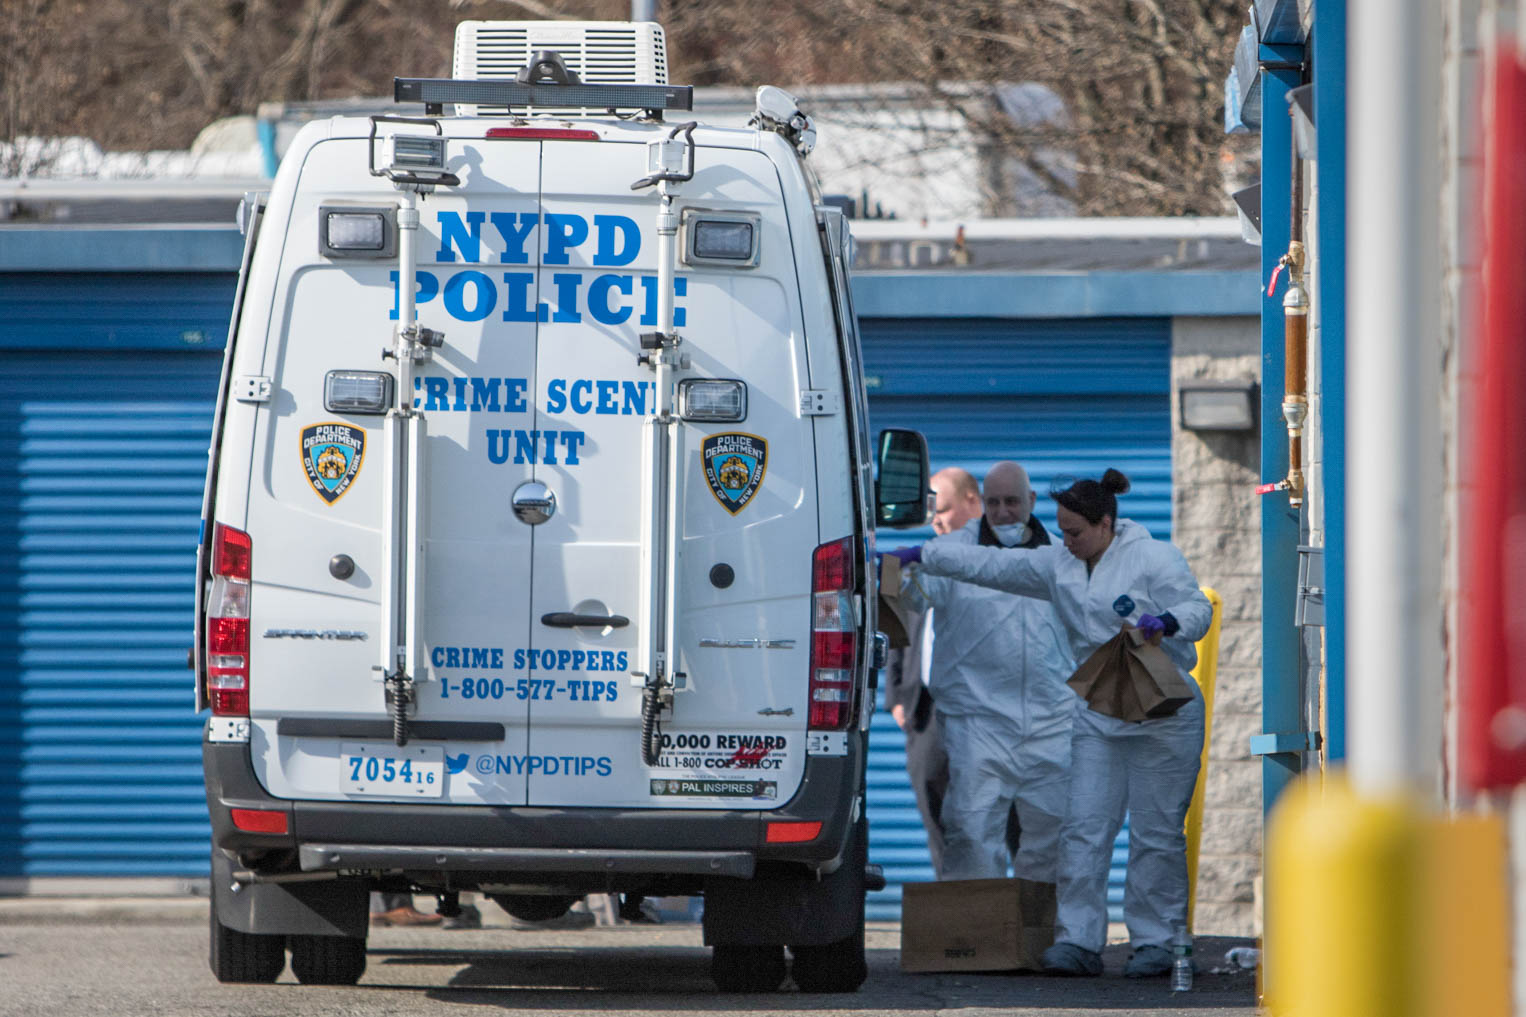 Police found charred human remains in a Staten Island storage unit at Extra Space Storage in Arden Heights on Thursday, April 4, 2019. The remains were confirmed by police to be a missing teacher, Jeanine Cammarata. Crime Scene Unit officers are pictured here carrying brown paper bags filled with apparent evidence collected at the storage facility.